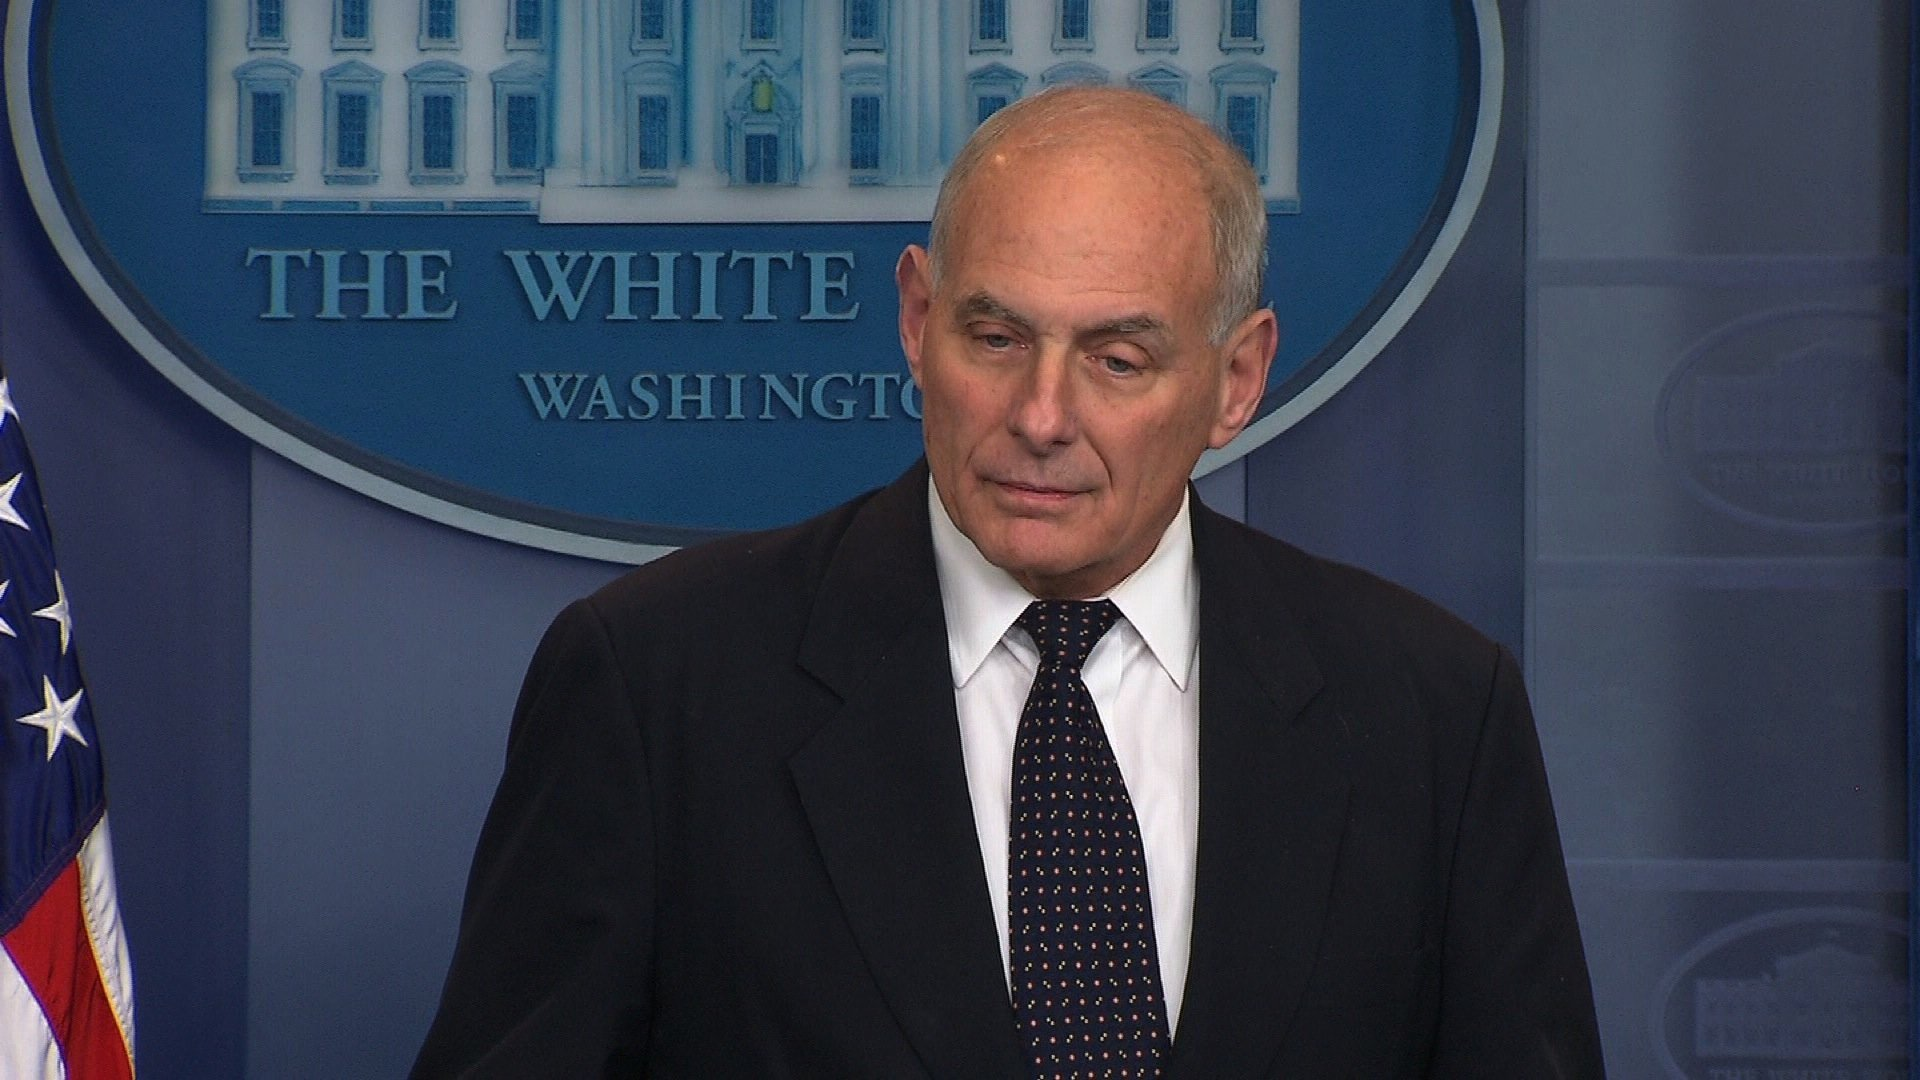 There has been no decision by President Donald Trump to replace embattled White House chief of staff John Kelly, but multiple sources say conversations over who could succeed him have heated up.